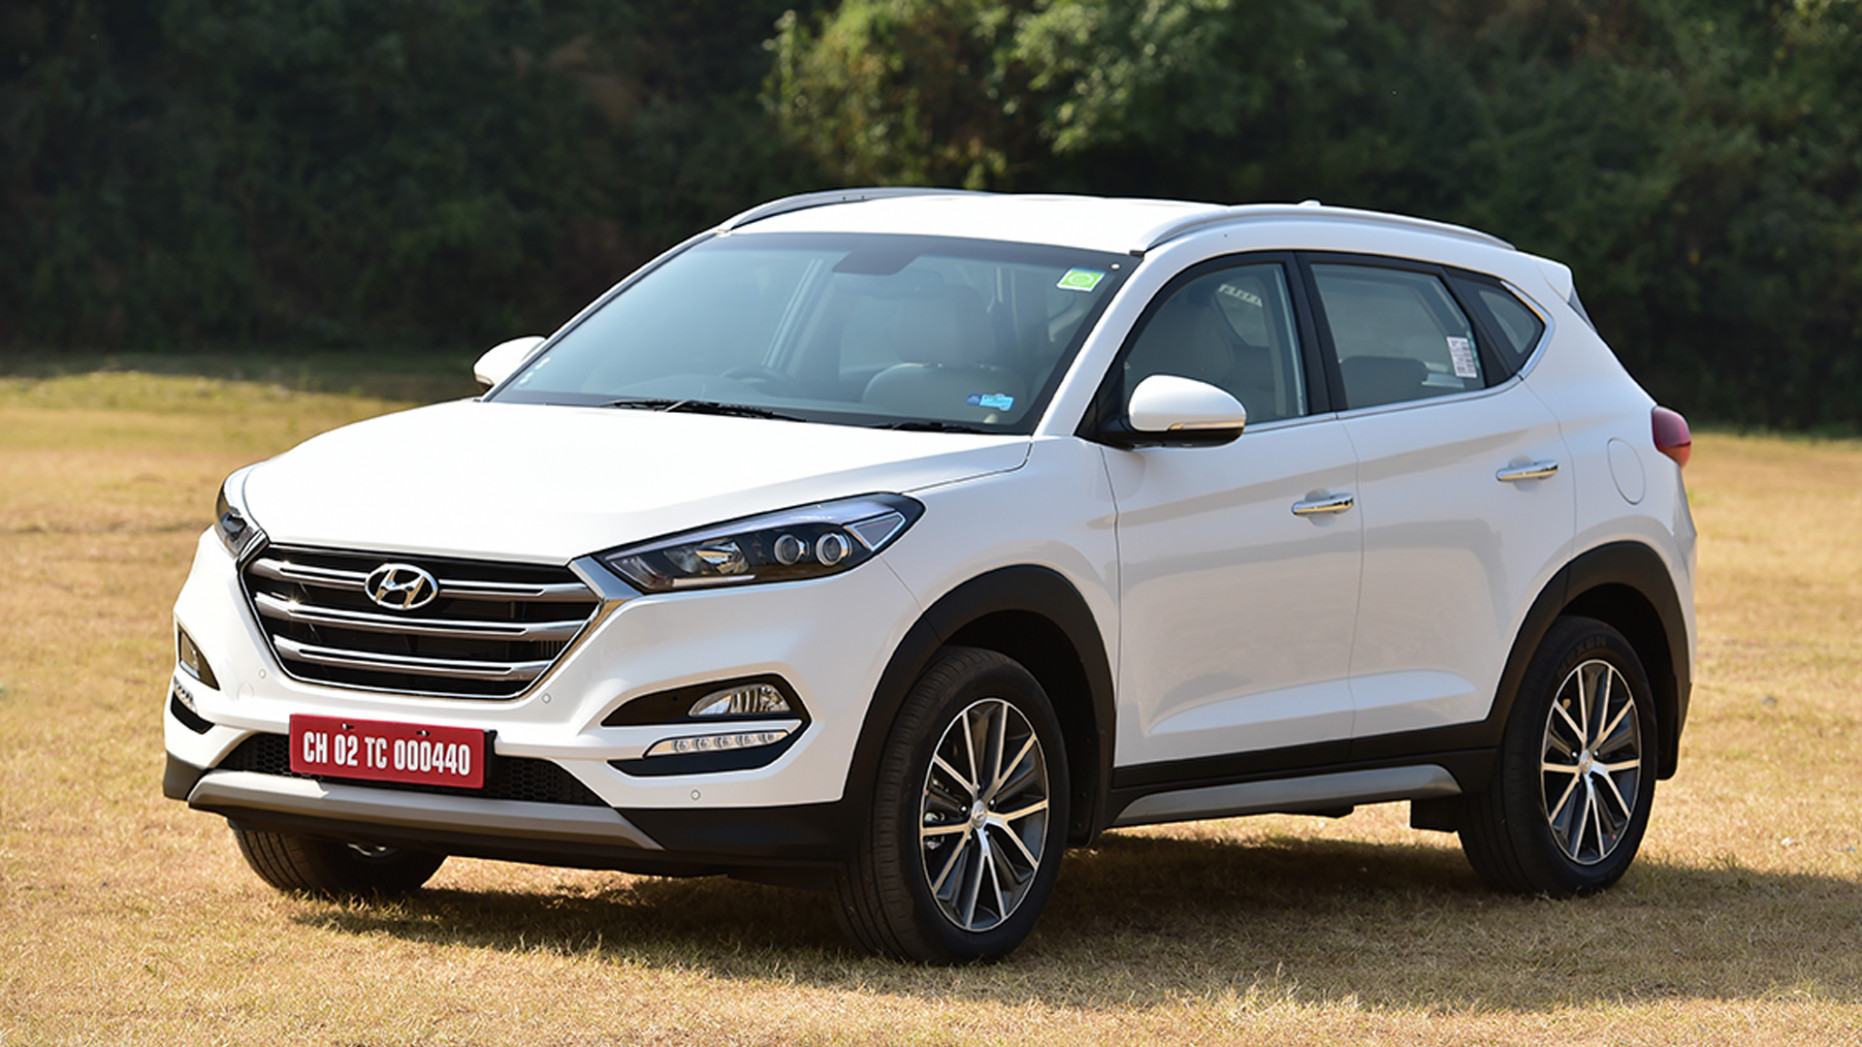 Hyundai Tucson 6 - Price, Mileage, Reviews, Specification ..